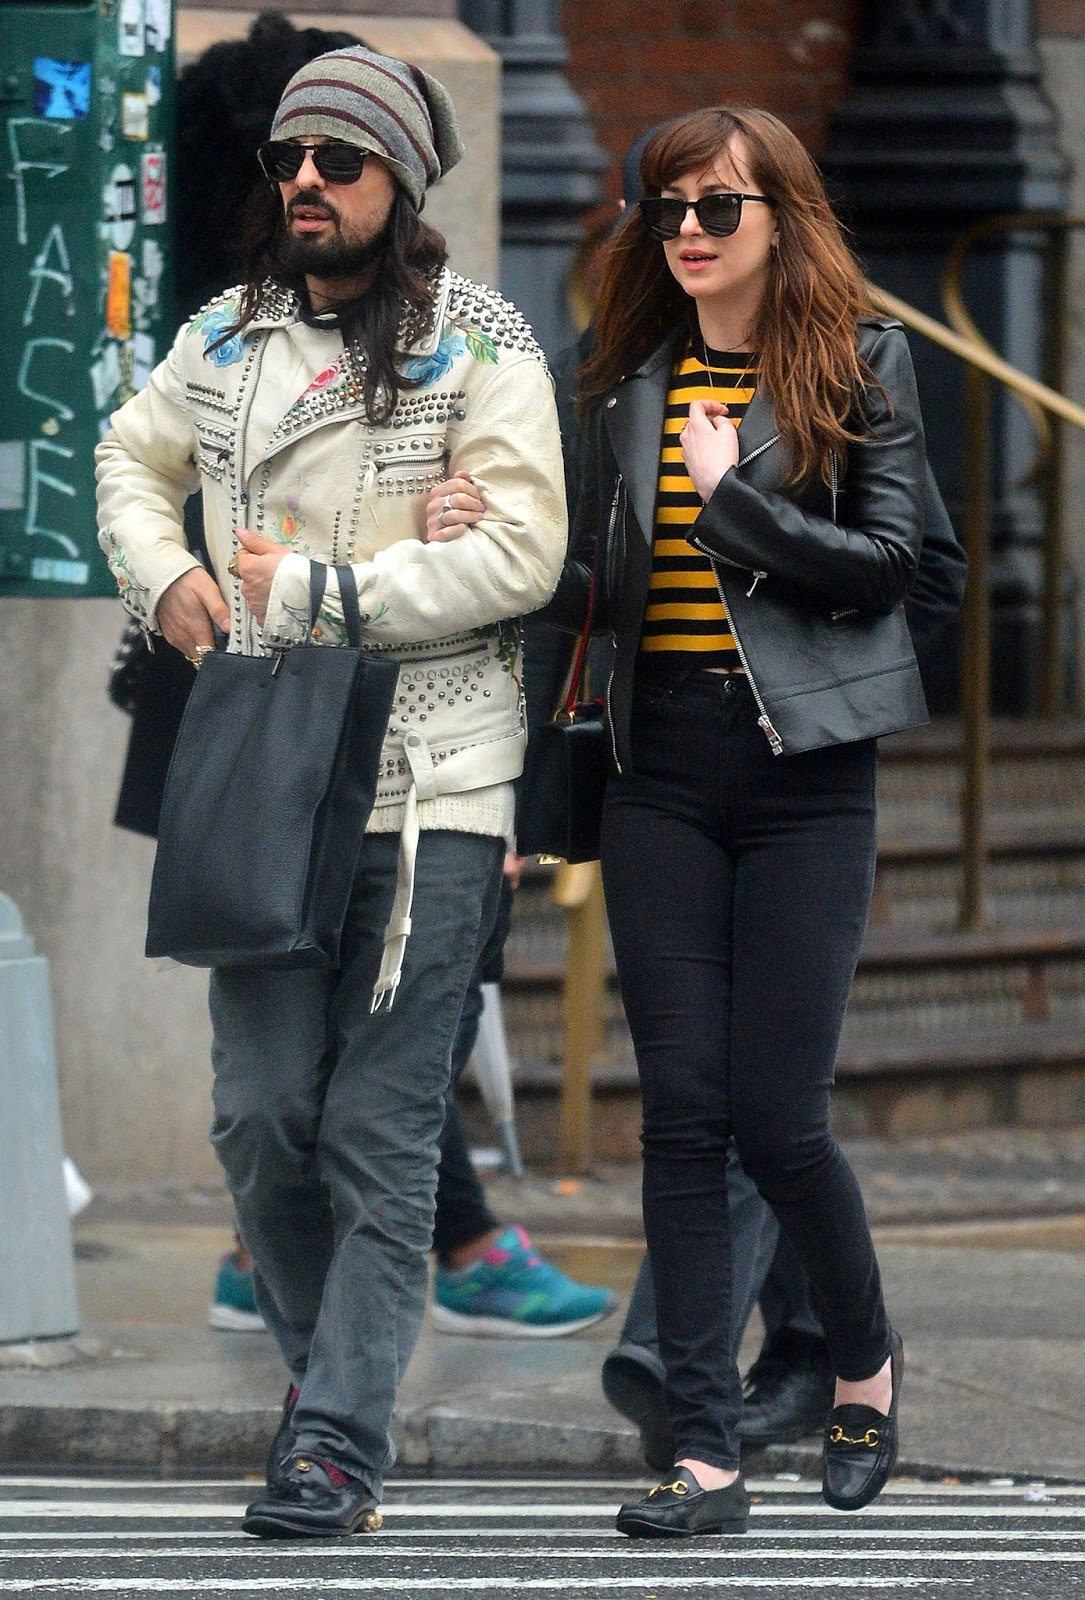 c1ae8ab3c16 New HQ s of Dakota out with Matt and Alessandro Michele in NYC (May 1st)